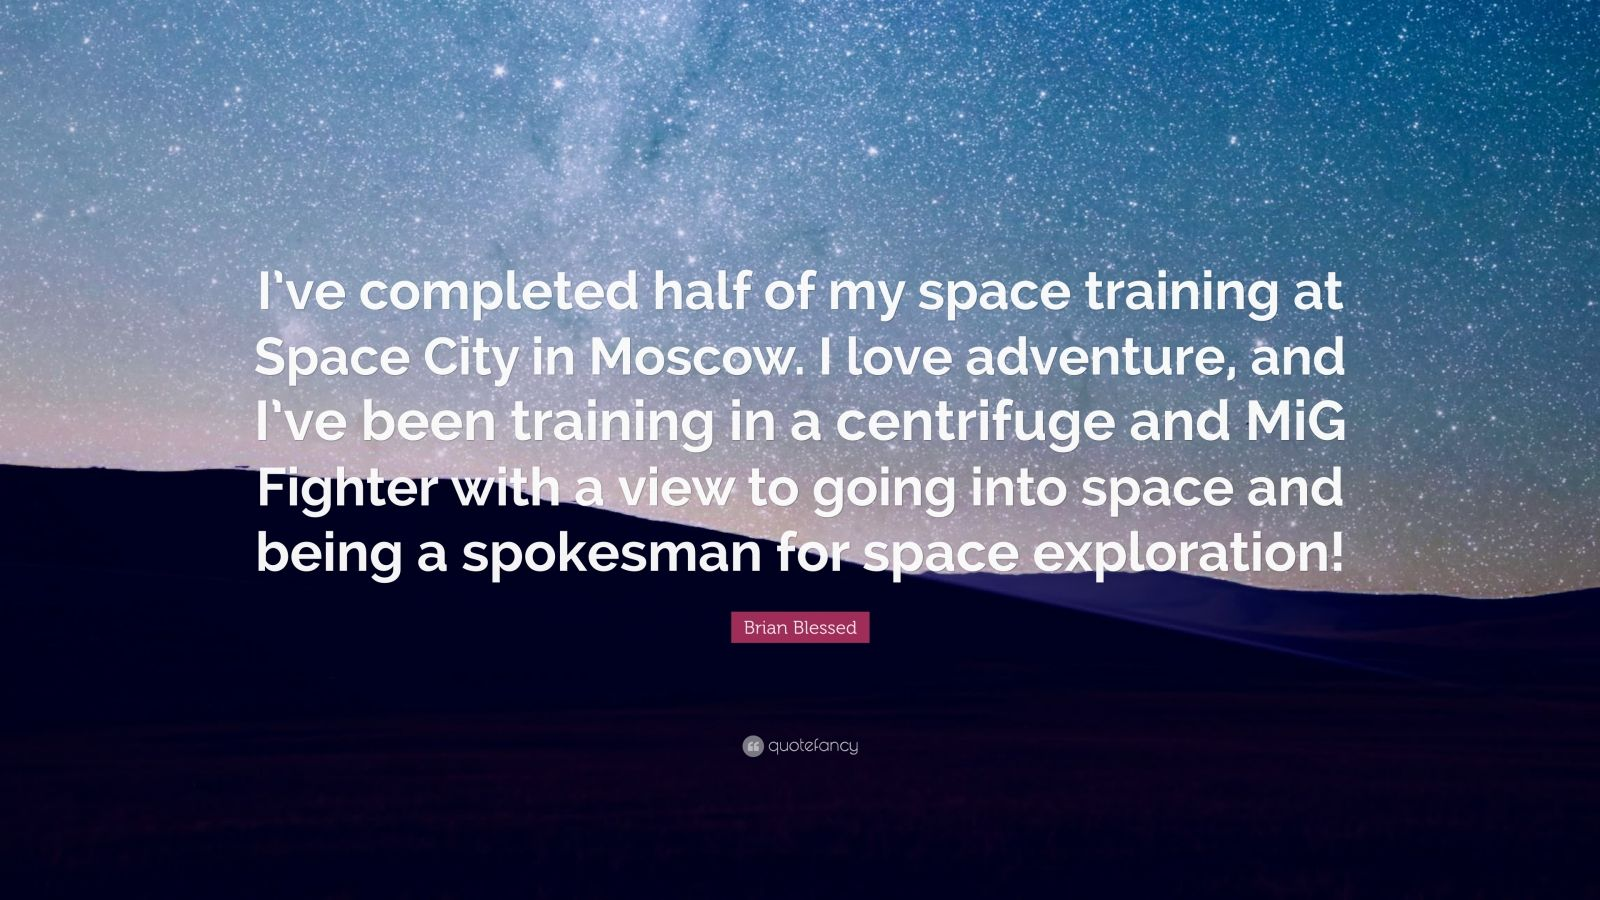 "Brian Blessed Quote: ""I've completed half of my space training at Space City in Moscow. I love adventure, and I've been training in a centrifuge and MiG Fighter with a view to going into space and being a spokesman for space exploration!"""